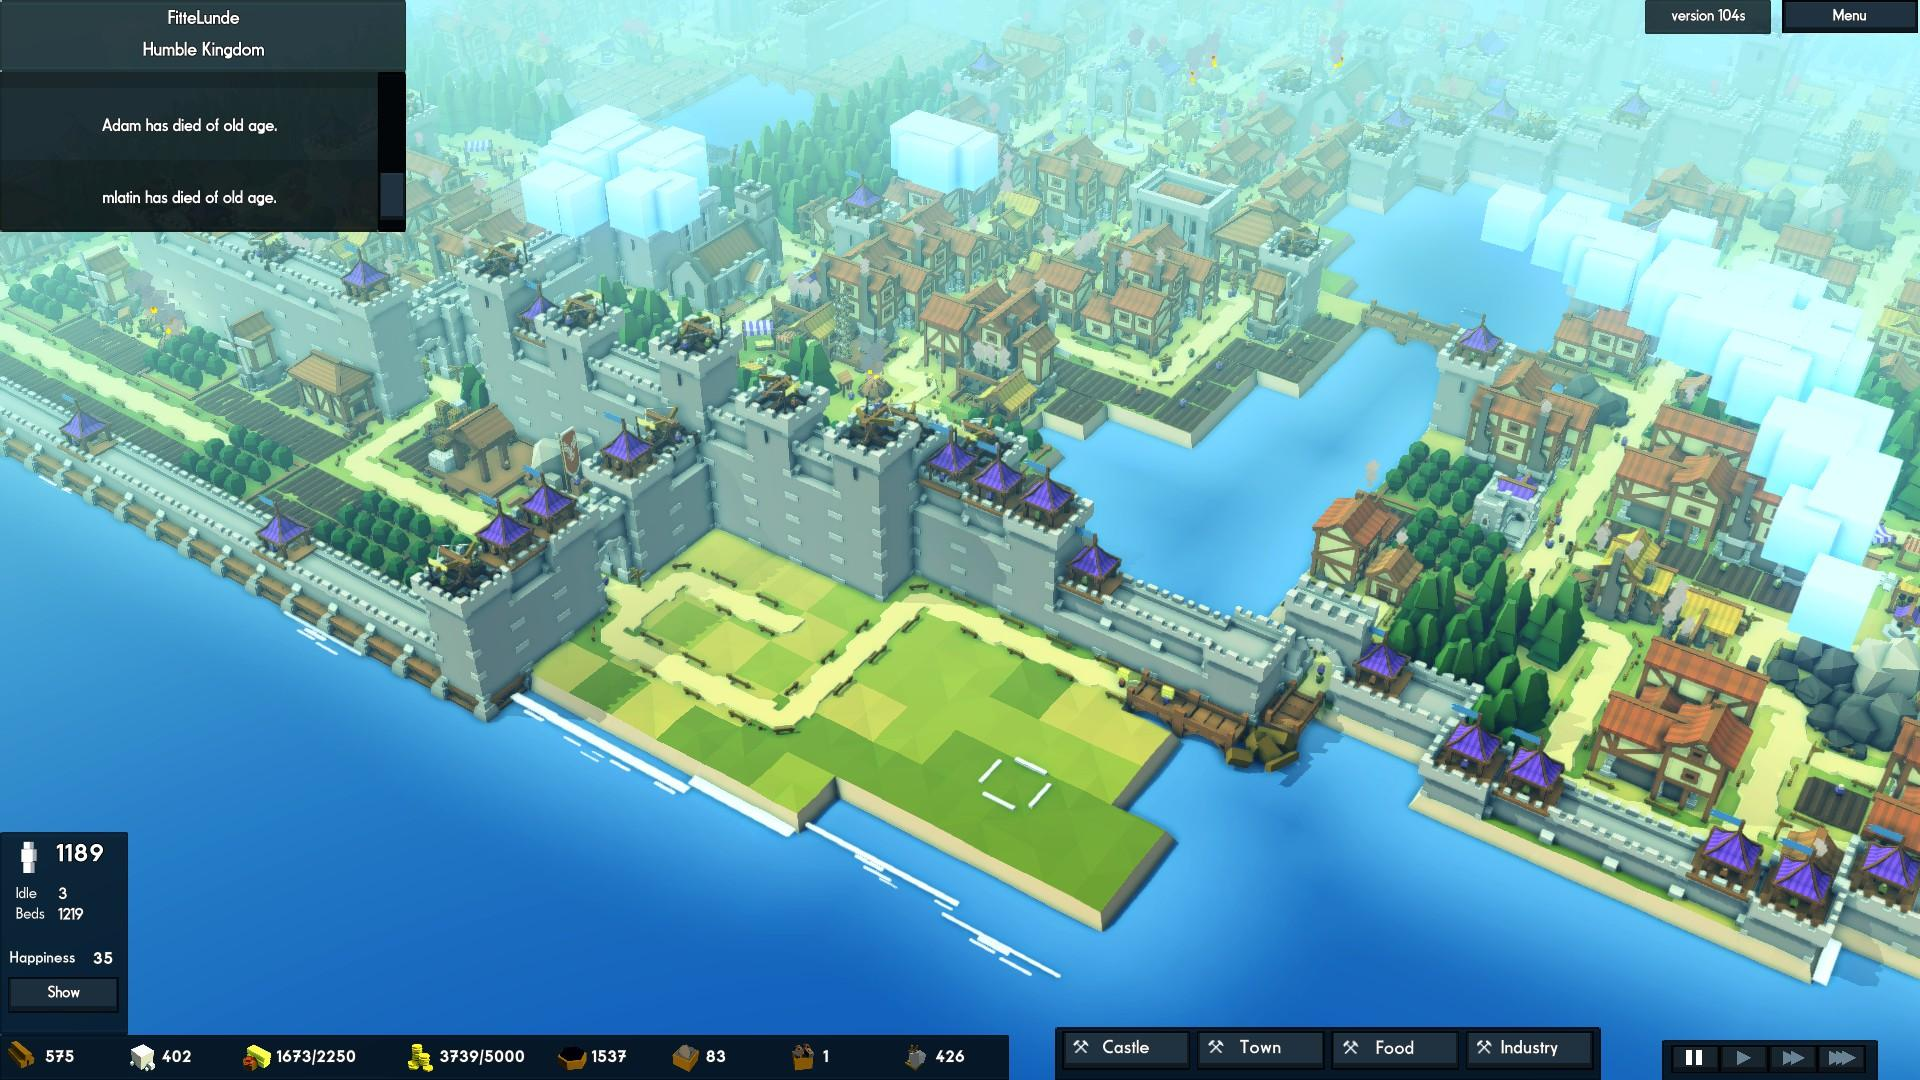 Kingdoms and Castles - Extensive Guide on How to Build Efficiently